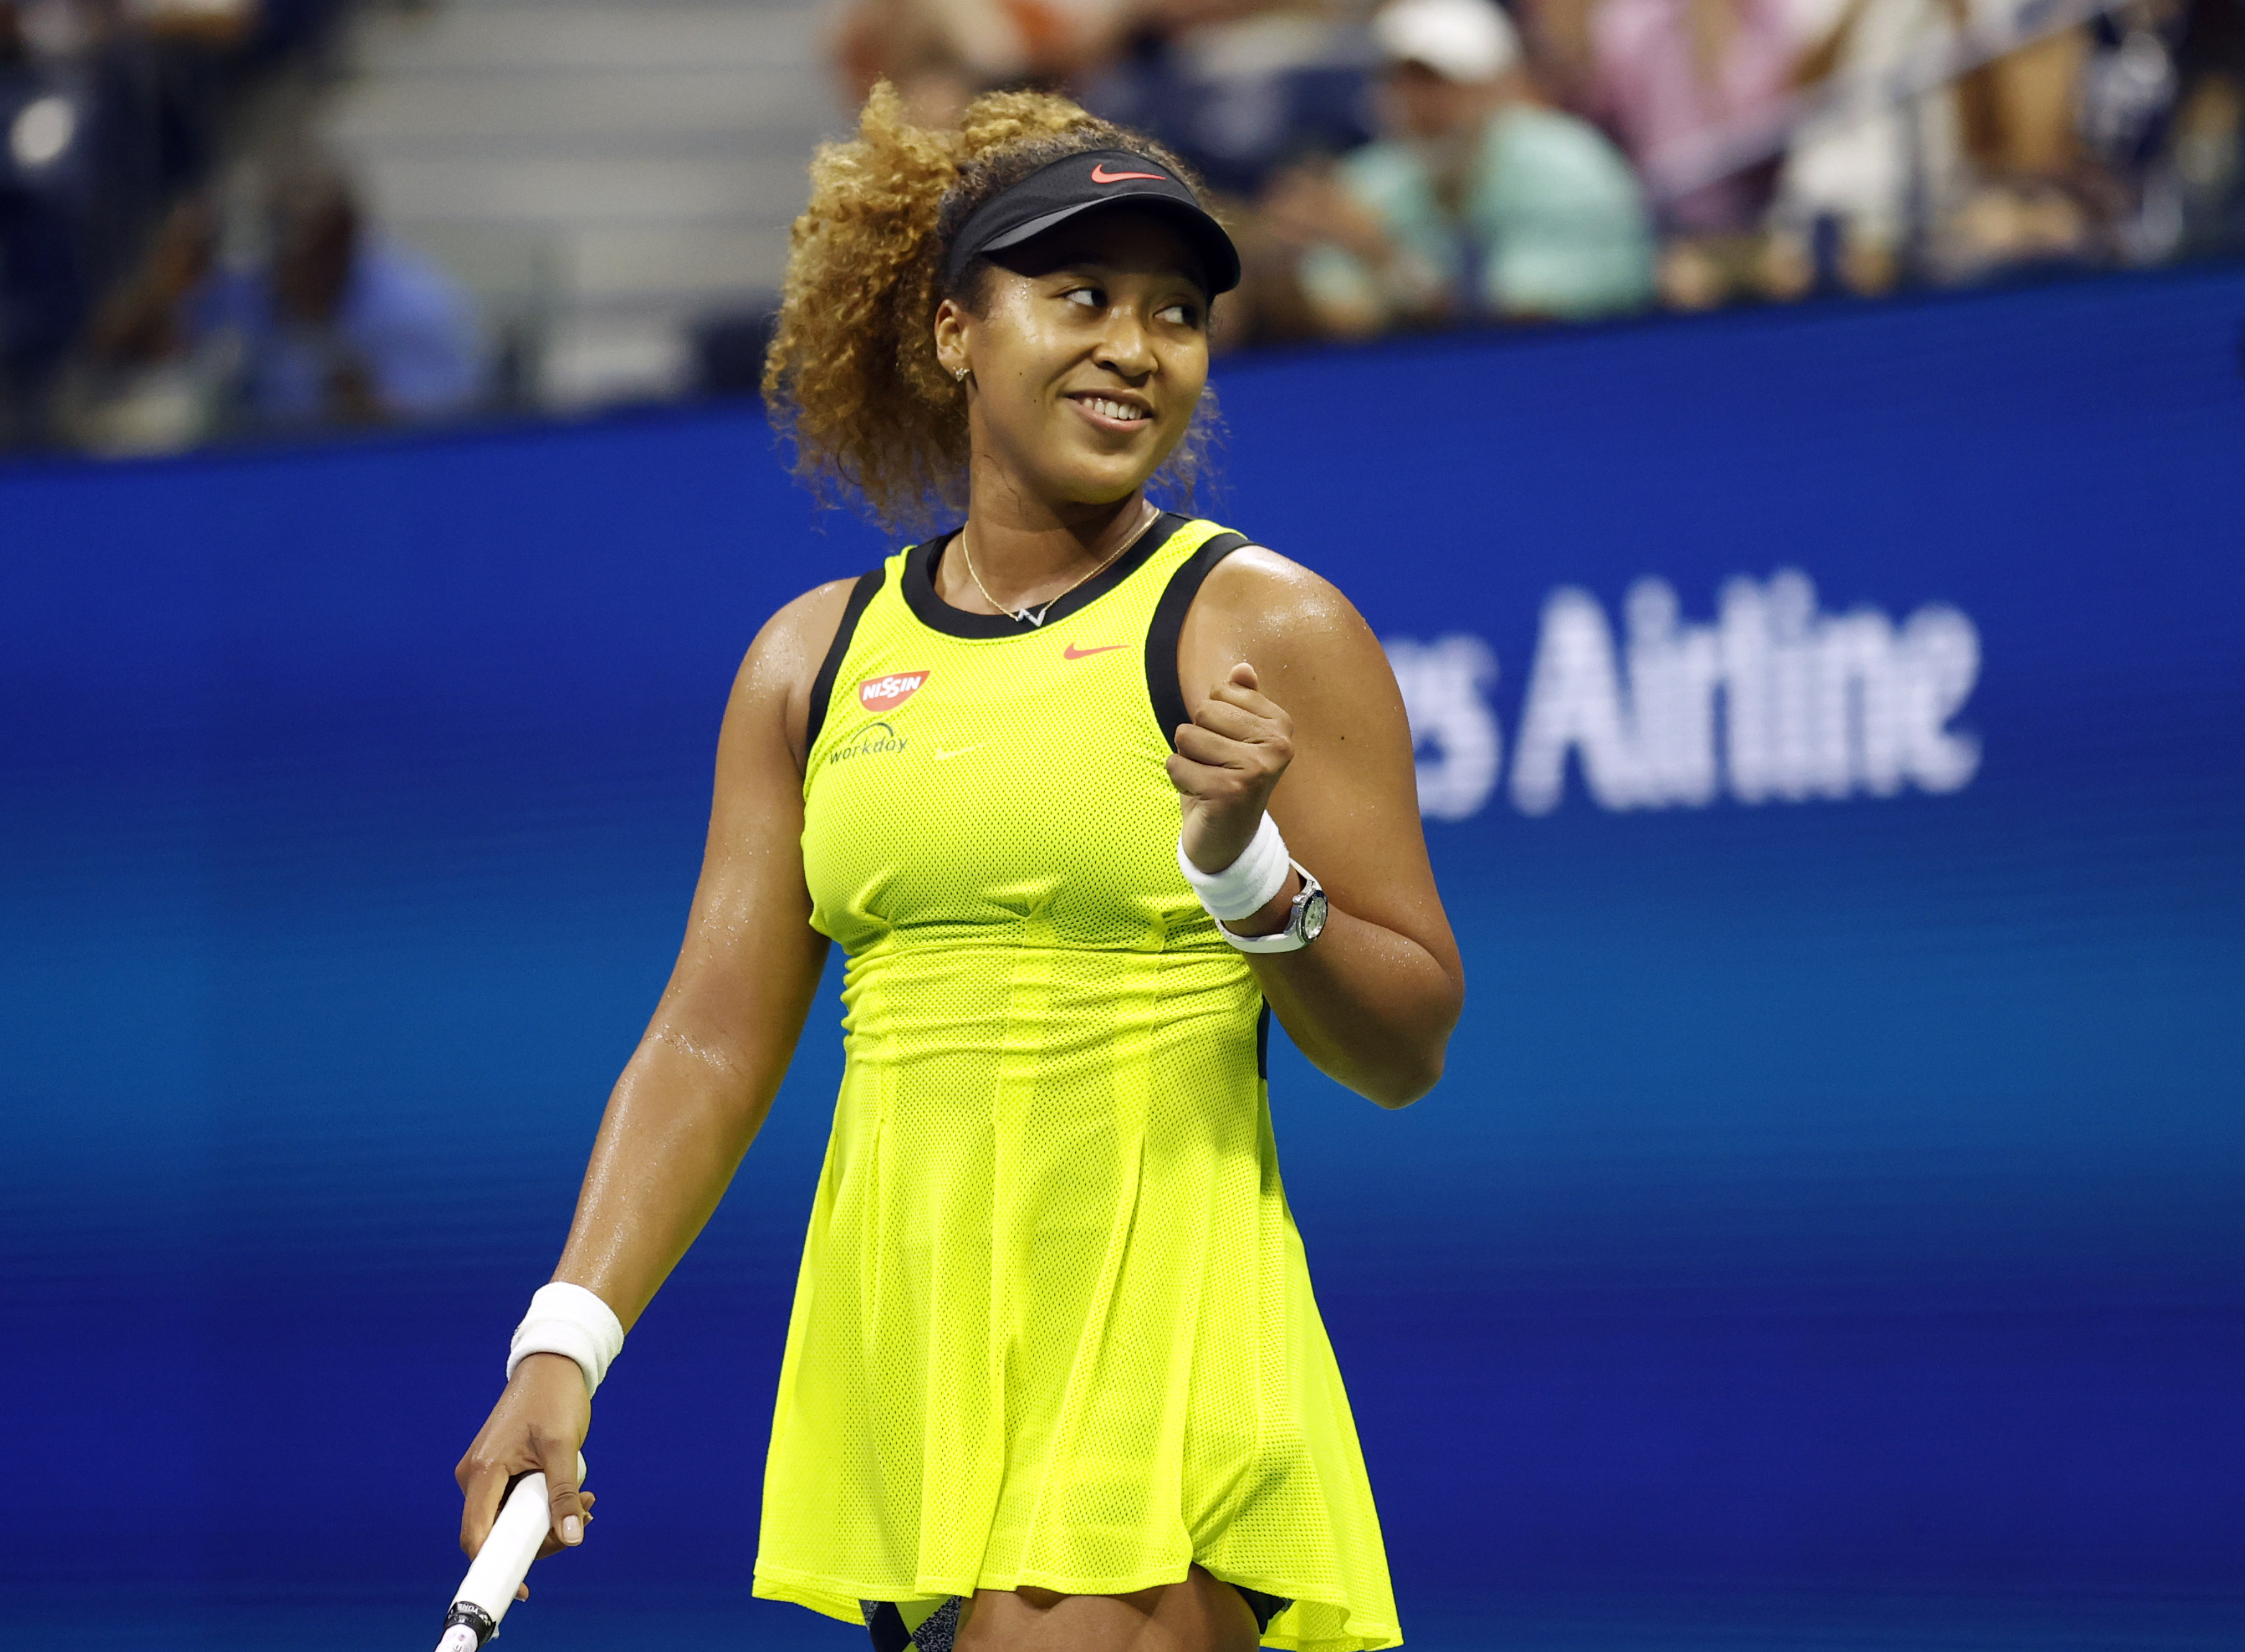 Naomi Osaka of Japan celebrates after recording match point Marie Bouzkova of Czech Republic in the first round on day one of the 2021 U.S. Open tennis tournament at USTA Billie King National Tennis Center.